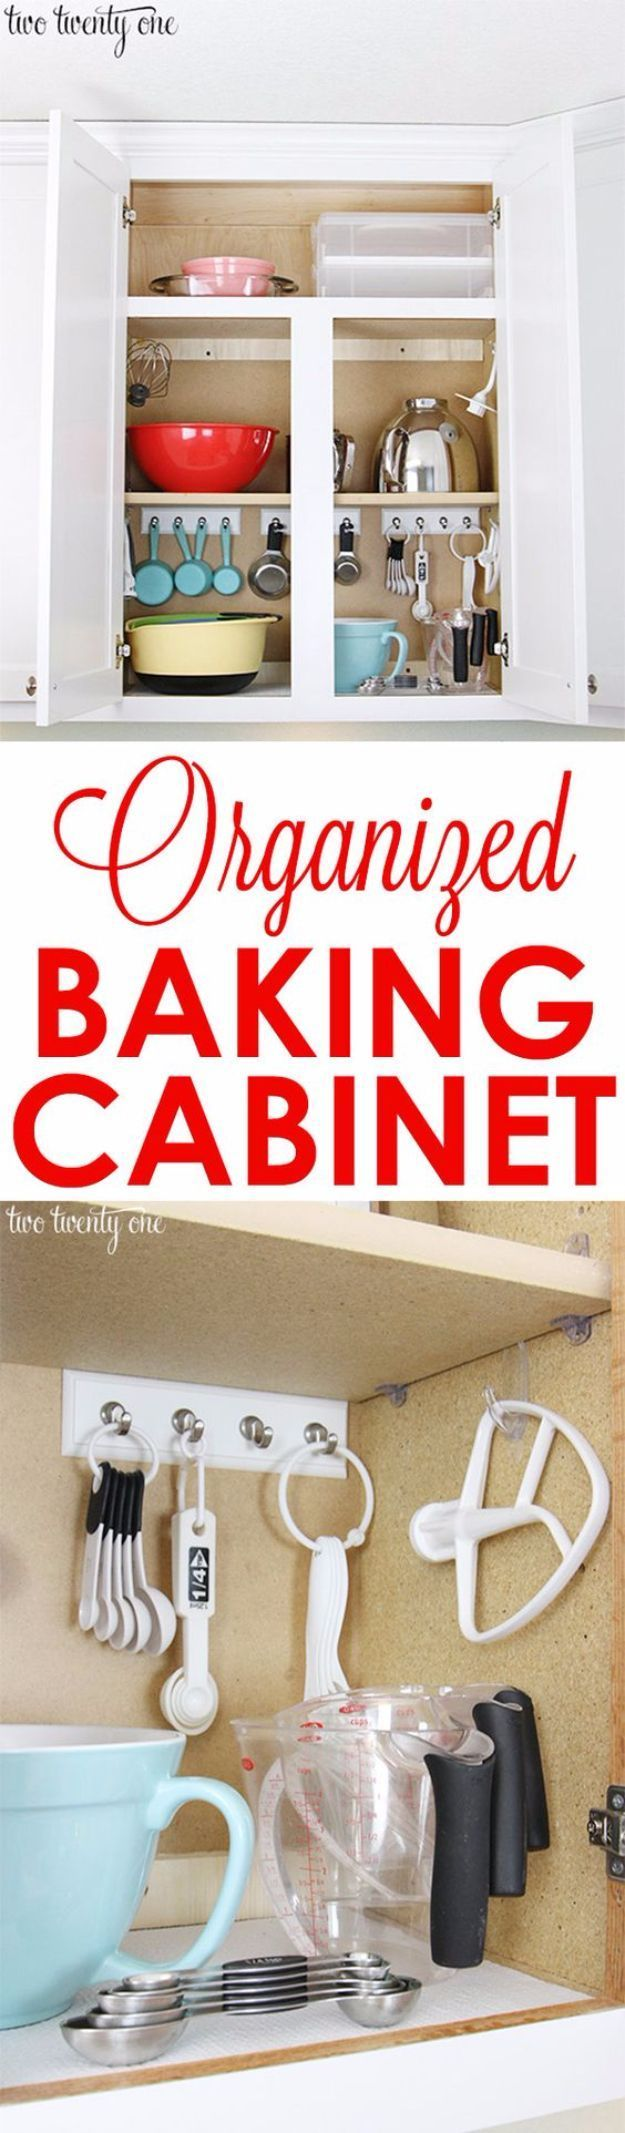 how to organize your baking cabinet diy tips host favorites